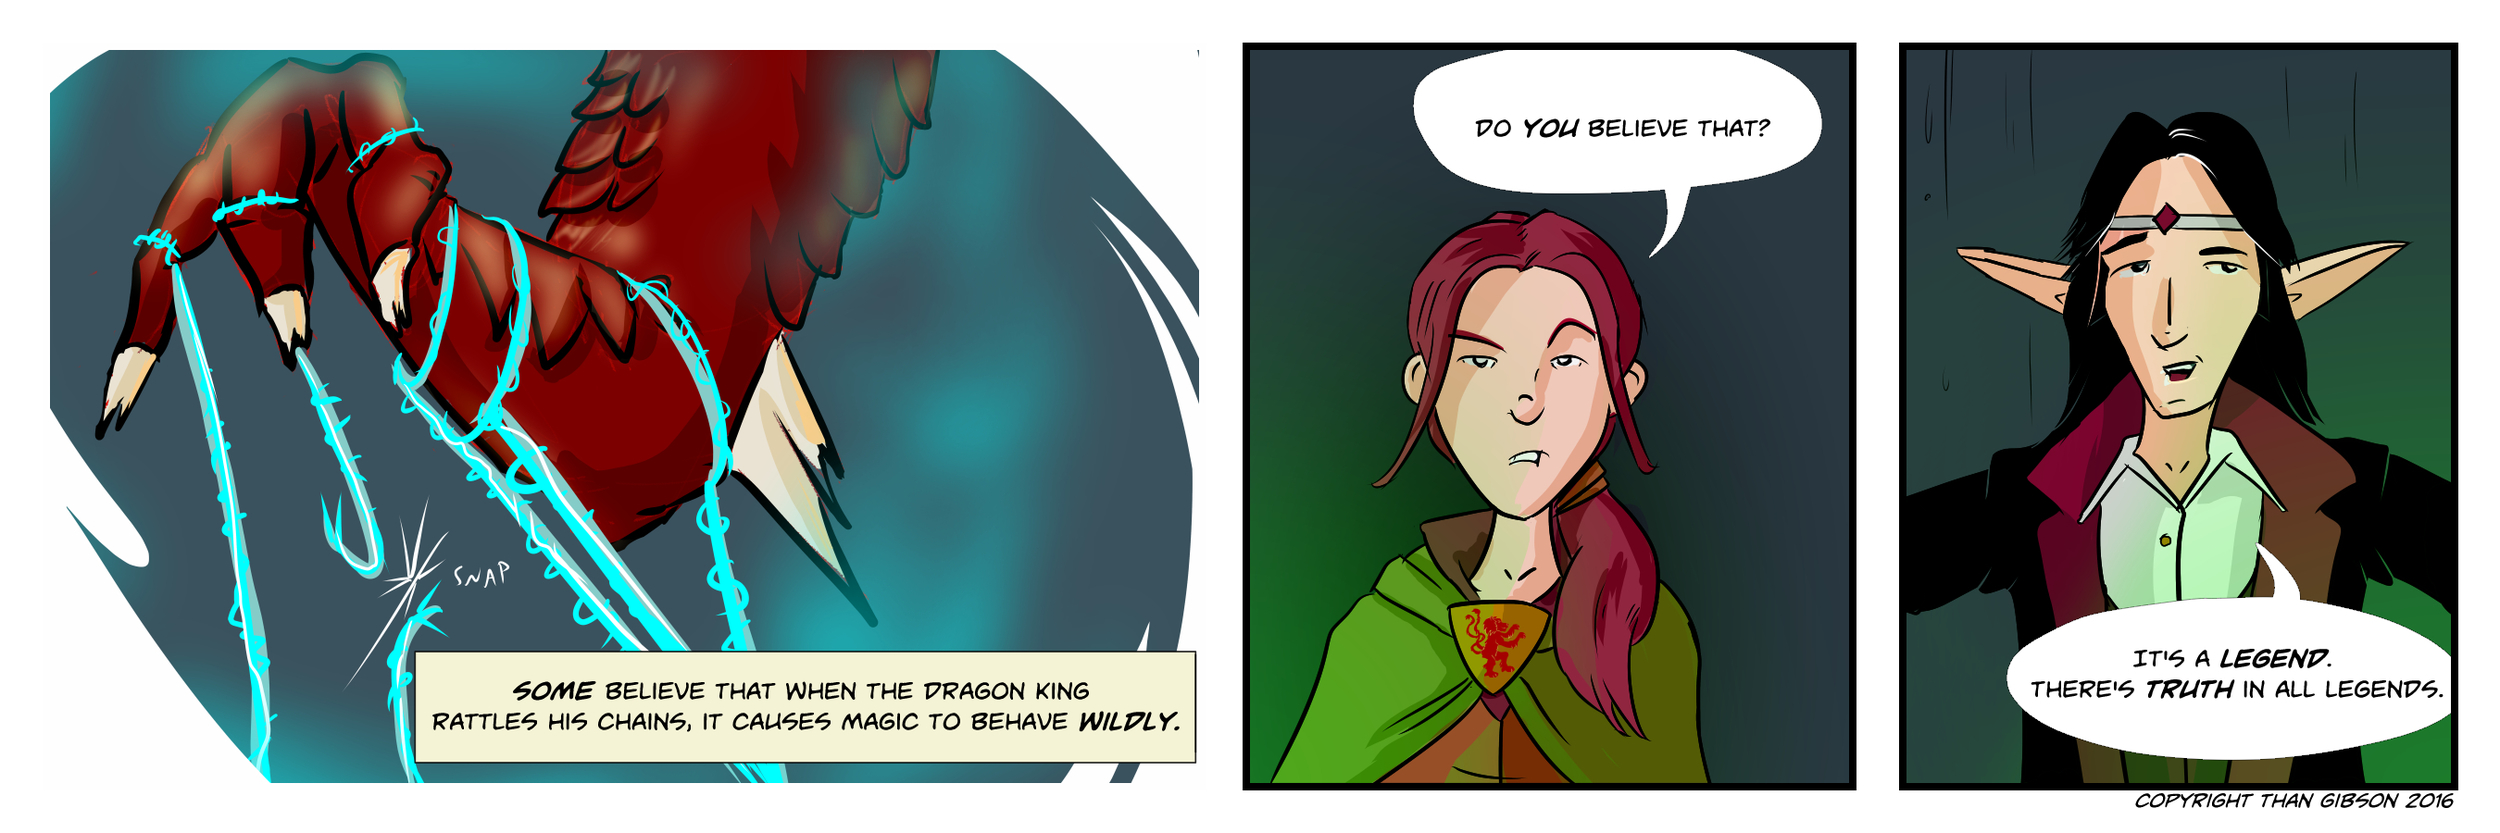 CHRONICLE: A CHRONICLE OF THIEVES - CHAPTER 3, STRIP 5